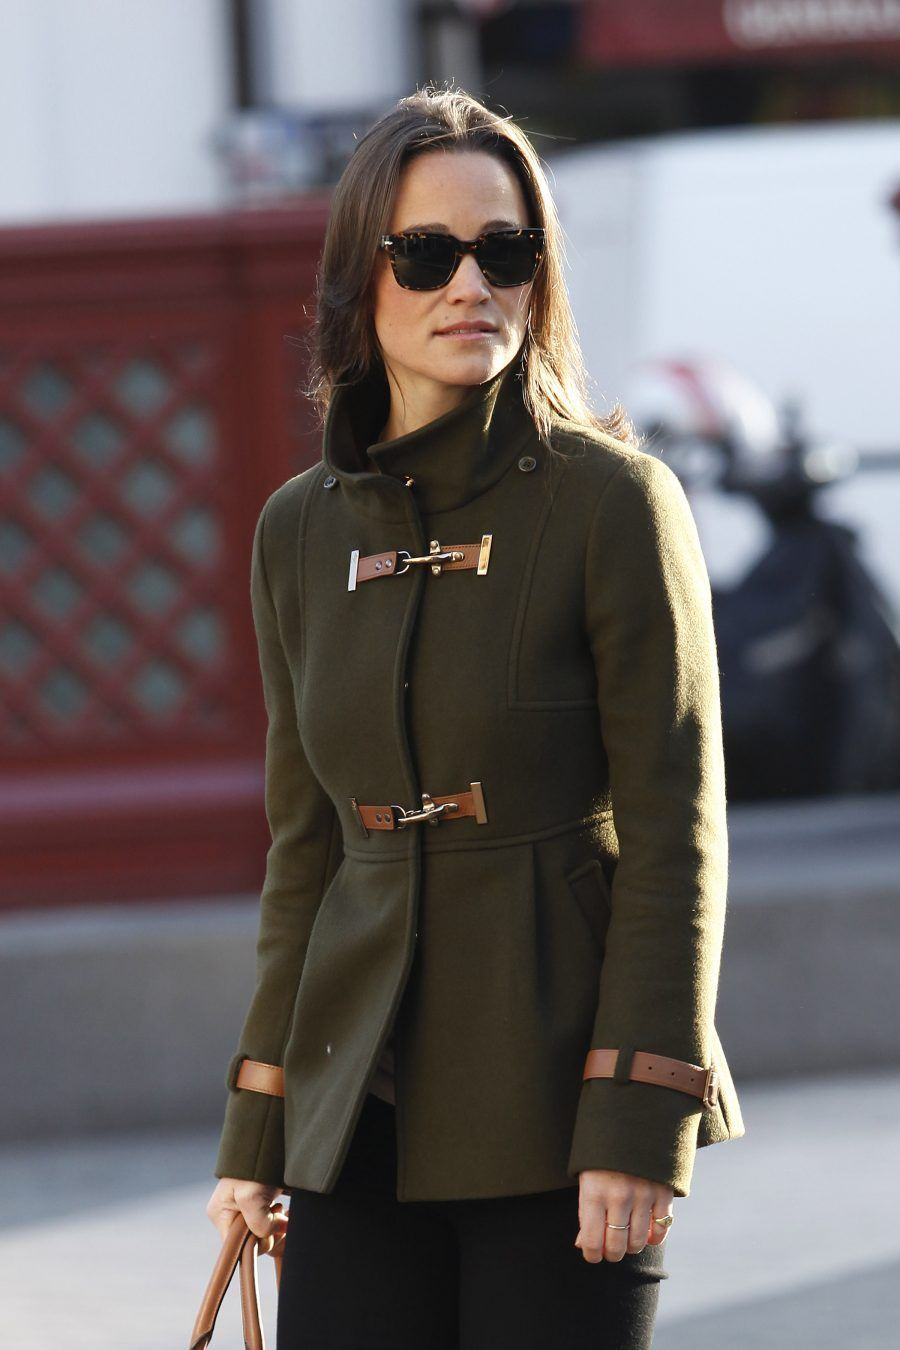 LONDON, UNITED KINGDOM - NOVEMBER 15: Pippa Middleton is sighted arriving at her South Kensington office on November 15, 2011 in London, England. (Photo by Neil Mockford/FilmMagic)